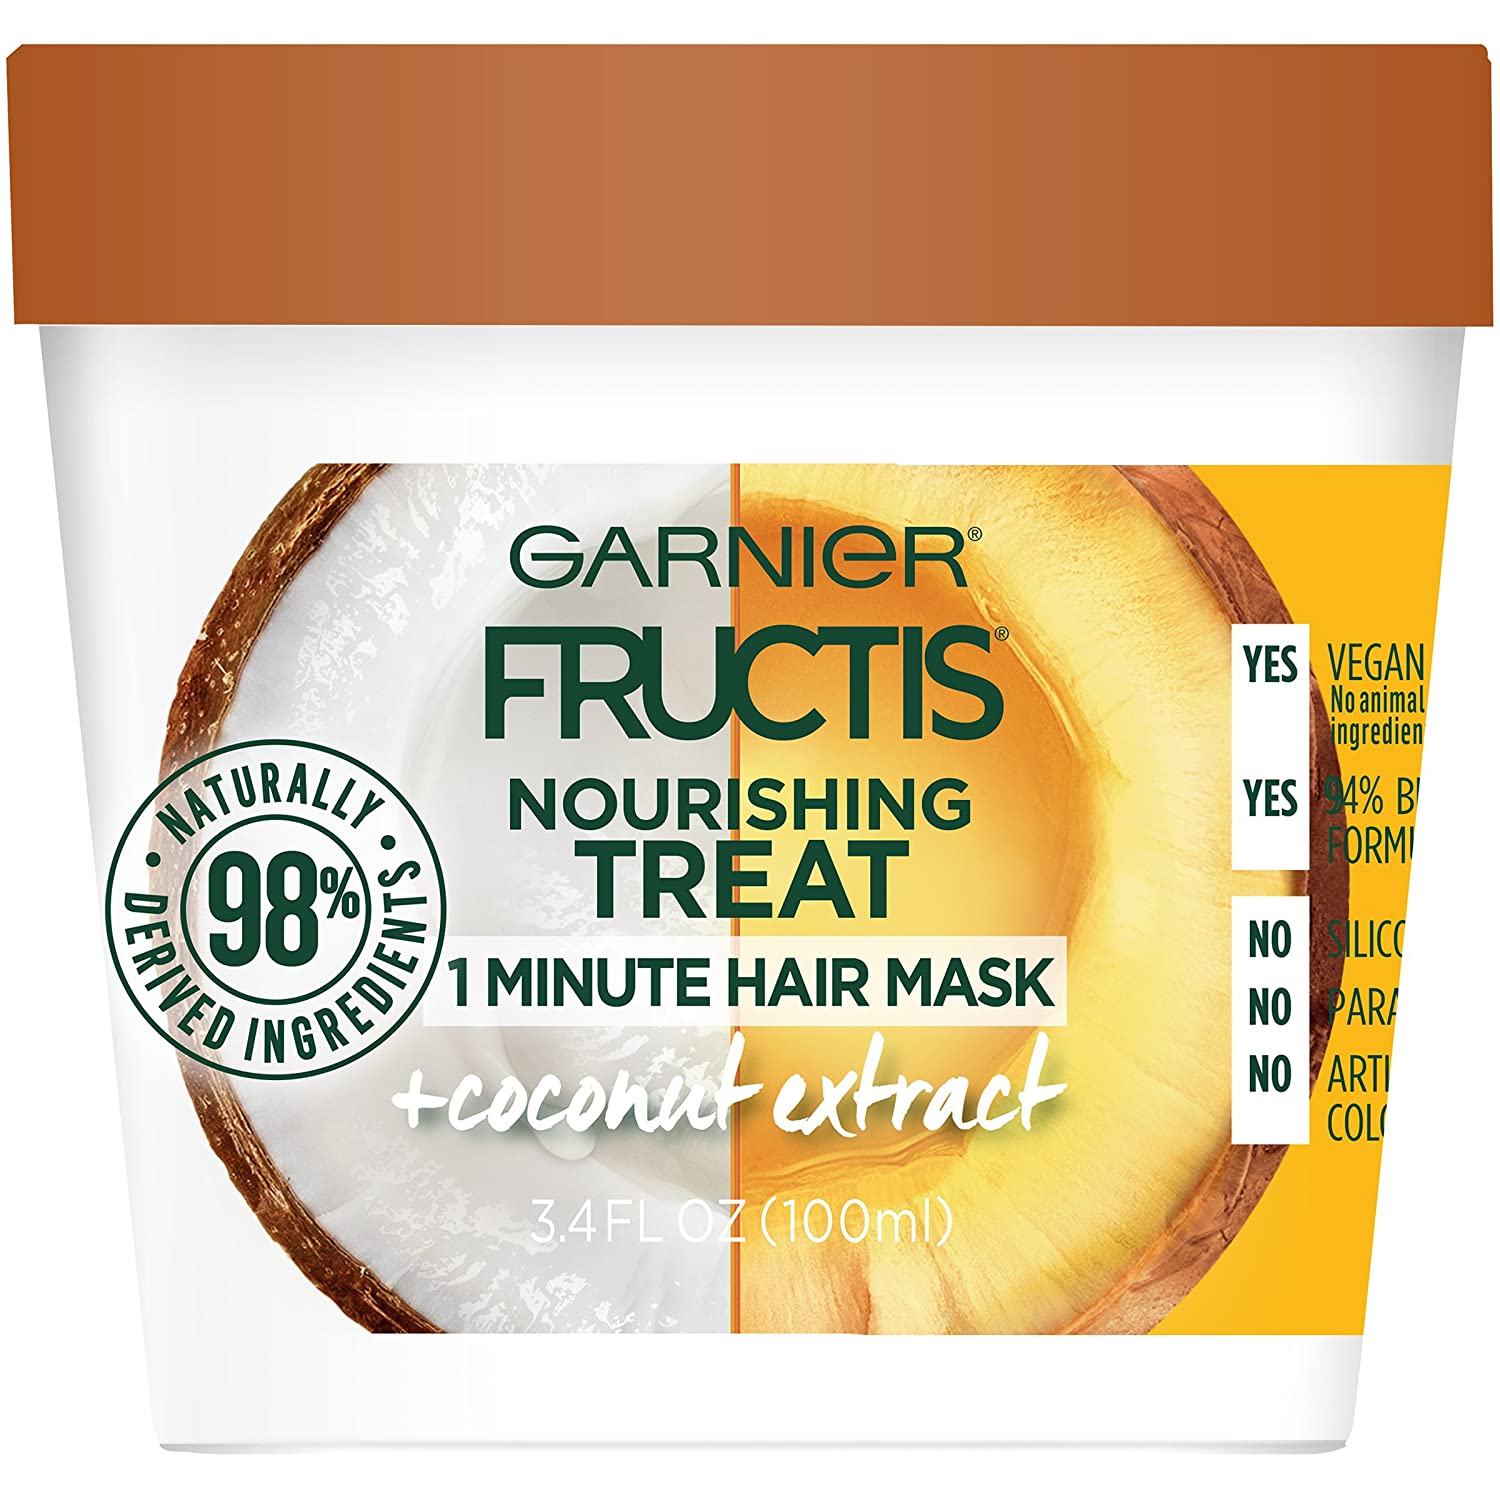 Garnier Fructis Nourishing Treat 1 Minute Hair Mask, 3.4 Fl Oz (Pack of 1) - Coconut